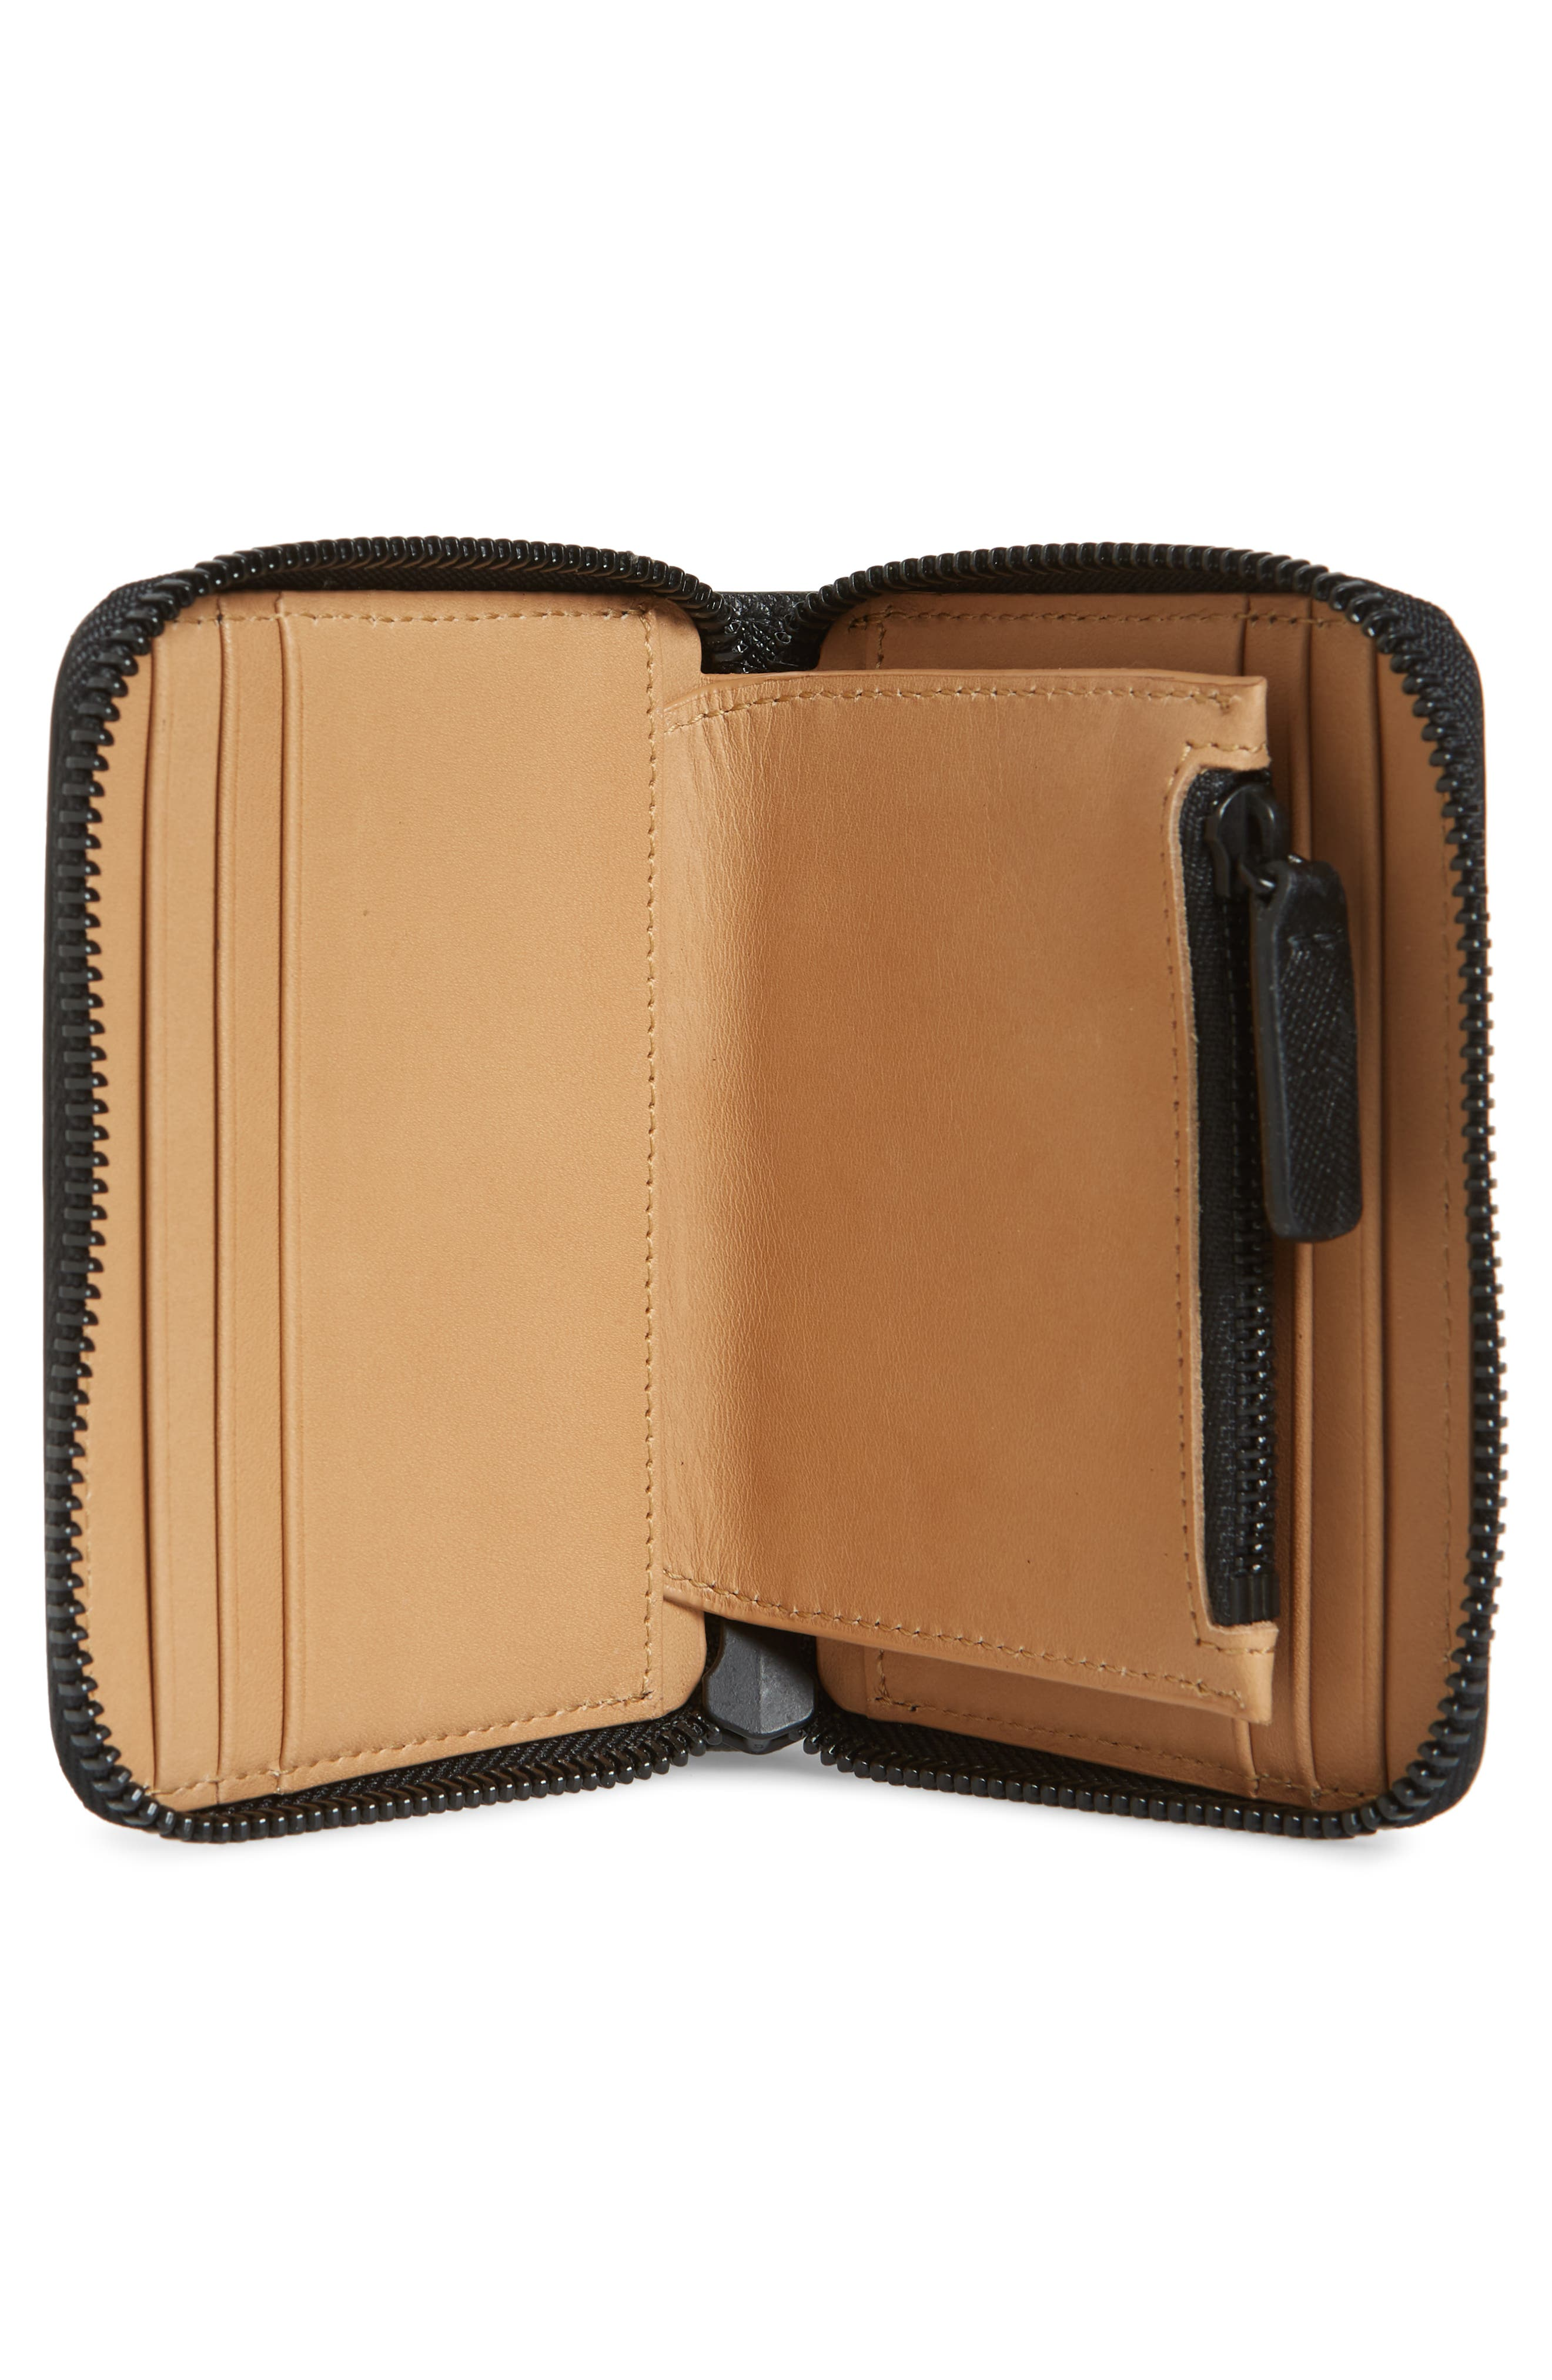 COMMON PROJECTS, Saffiano Zip Coin Case, Alternate thumbnail 2, color, 001